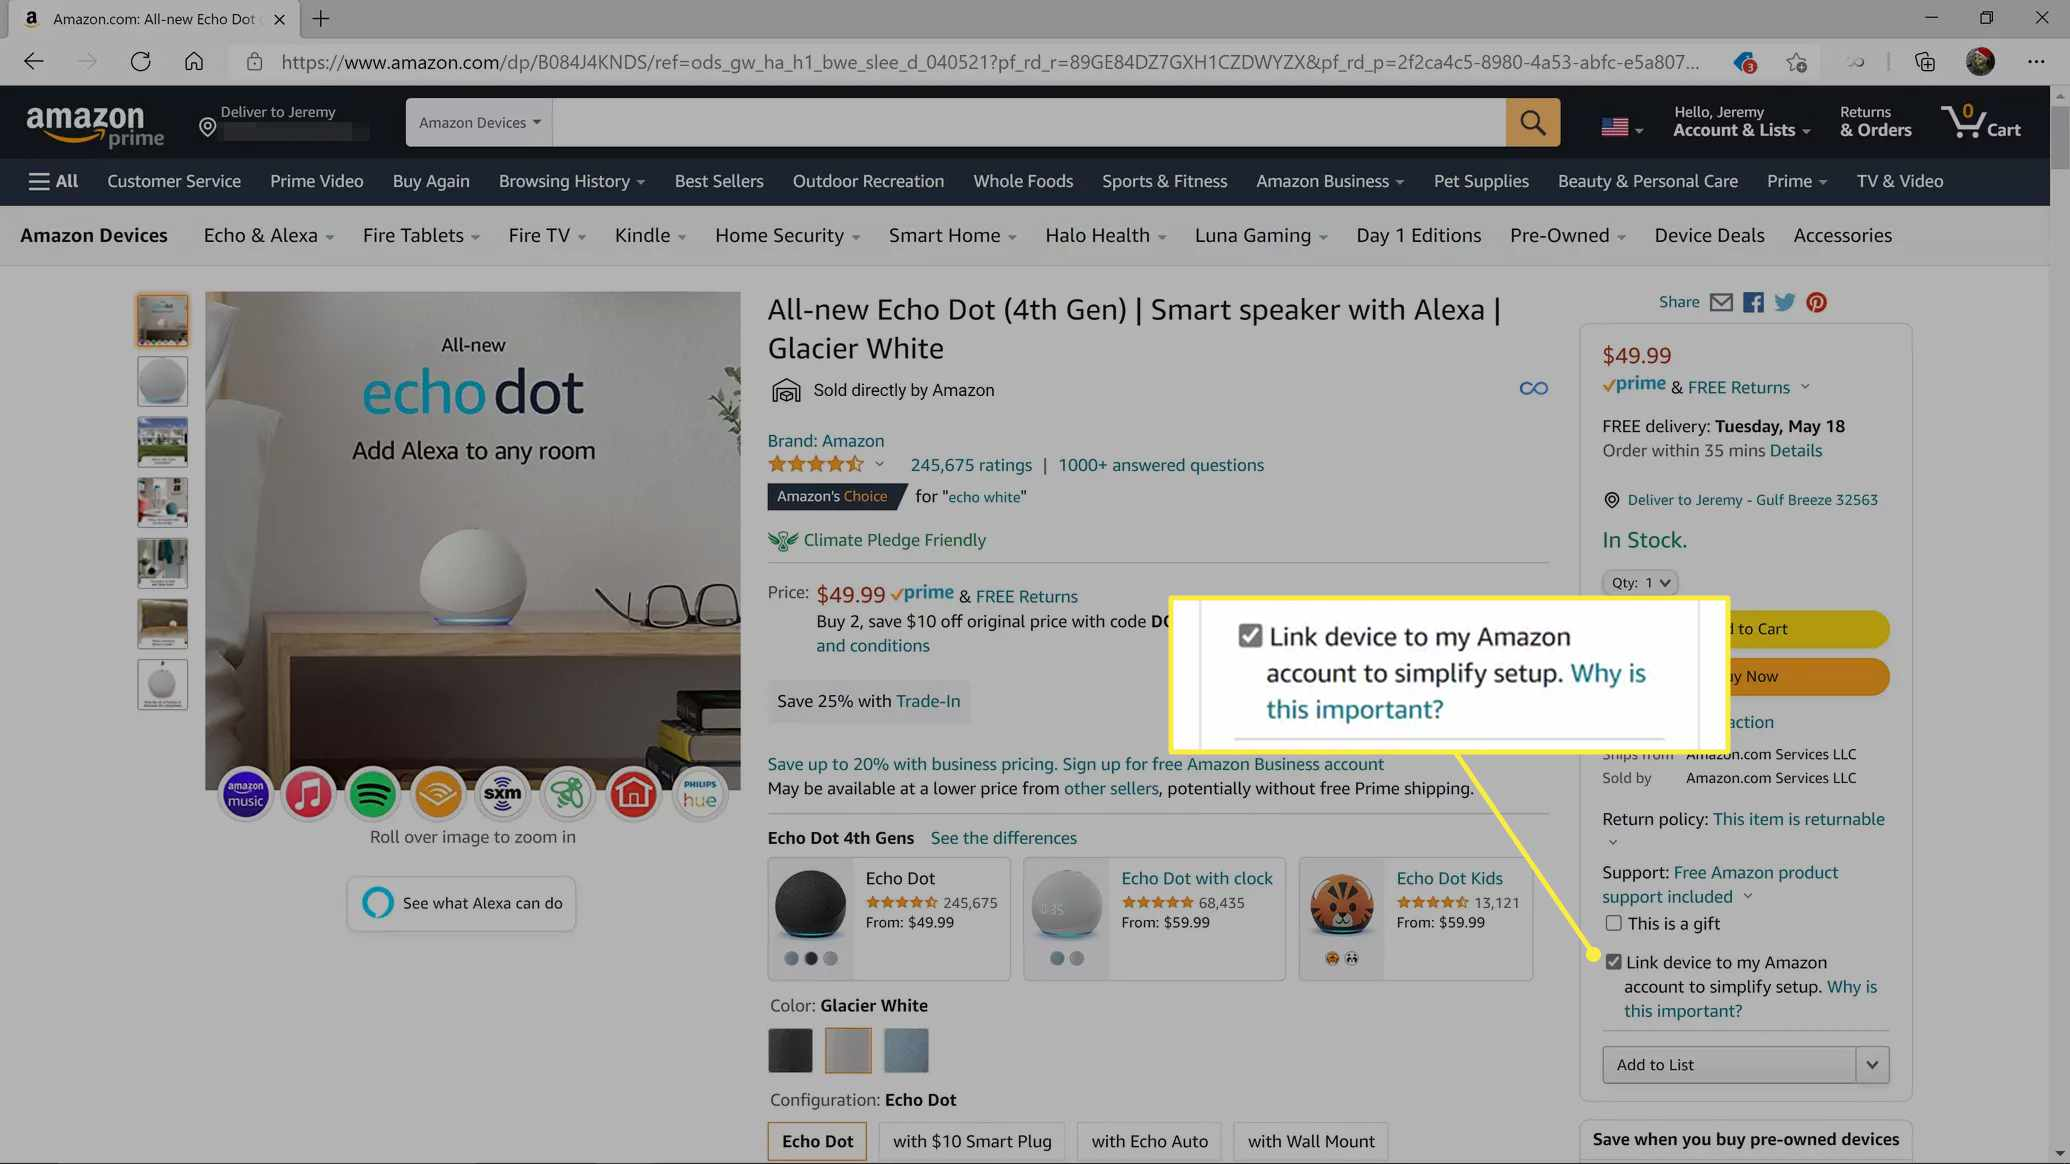 Link device to my Amazon account to simplify setup highlighted on an Echo Dot listing on Amazon.